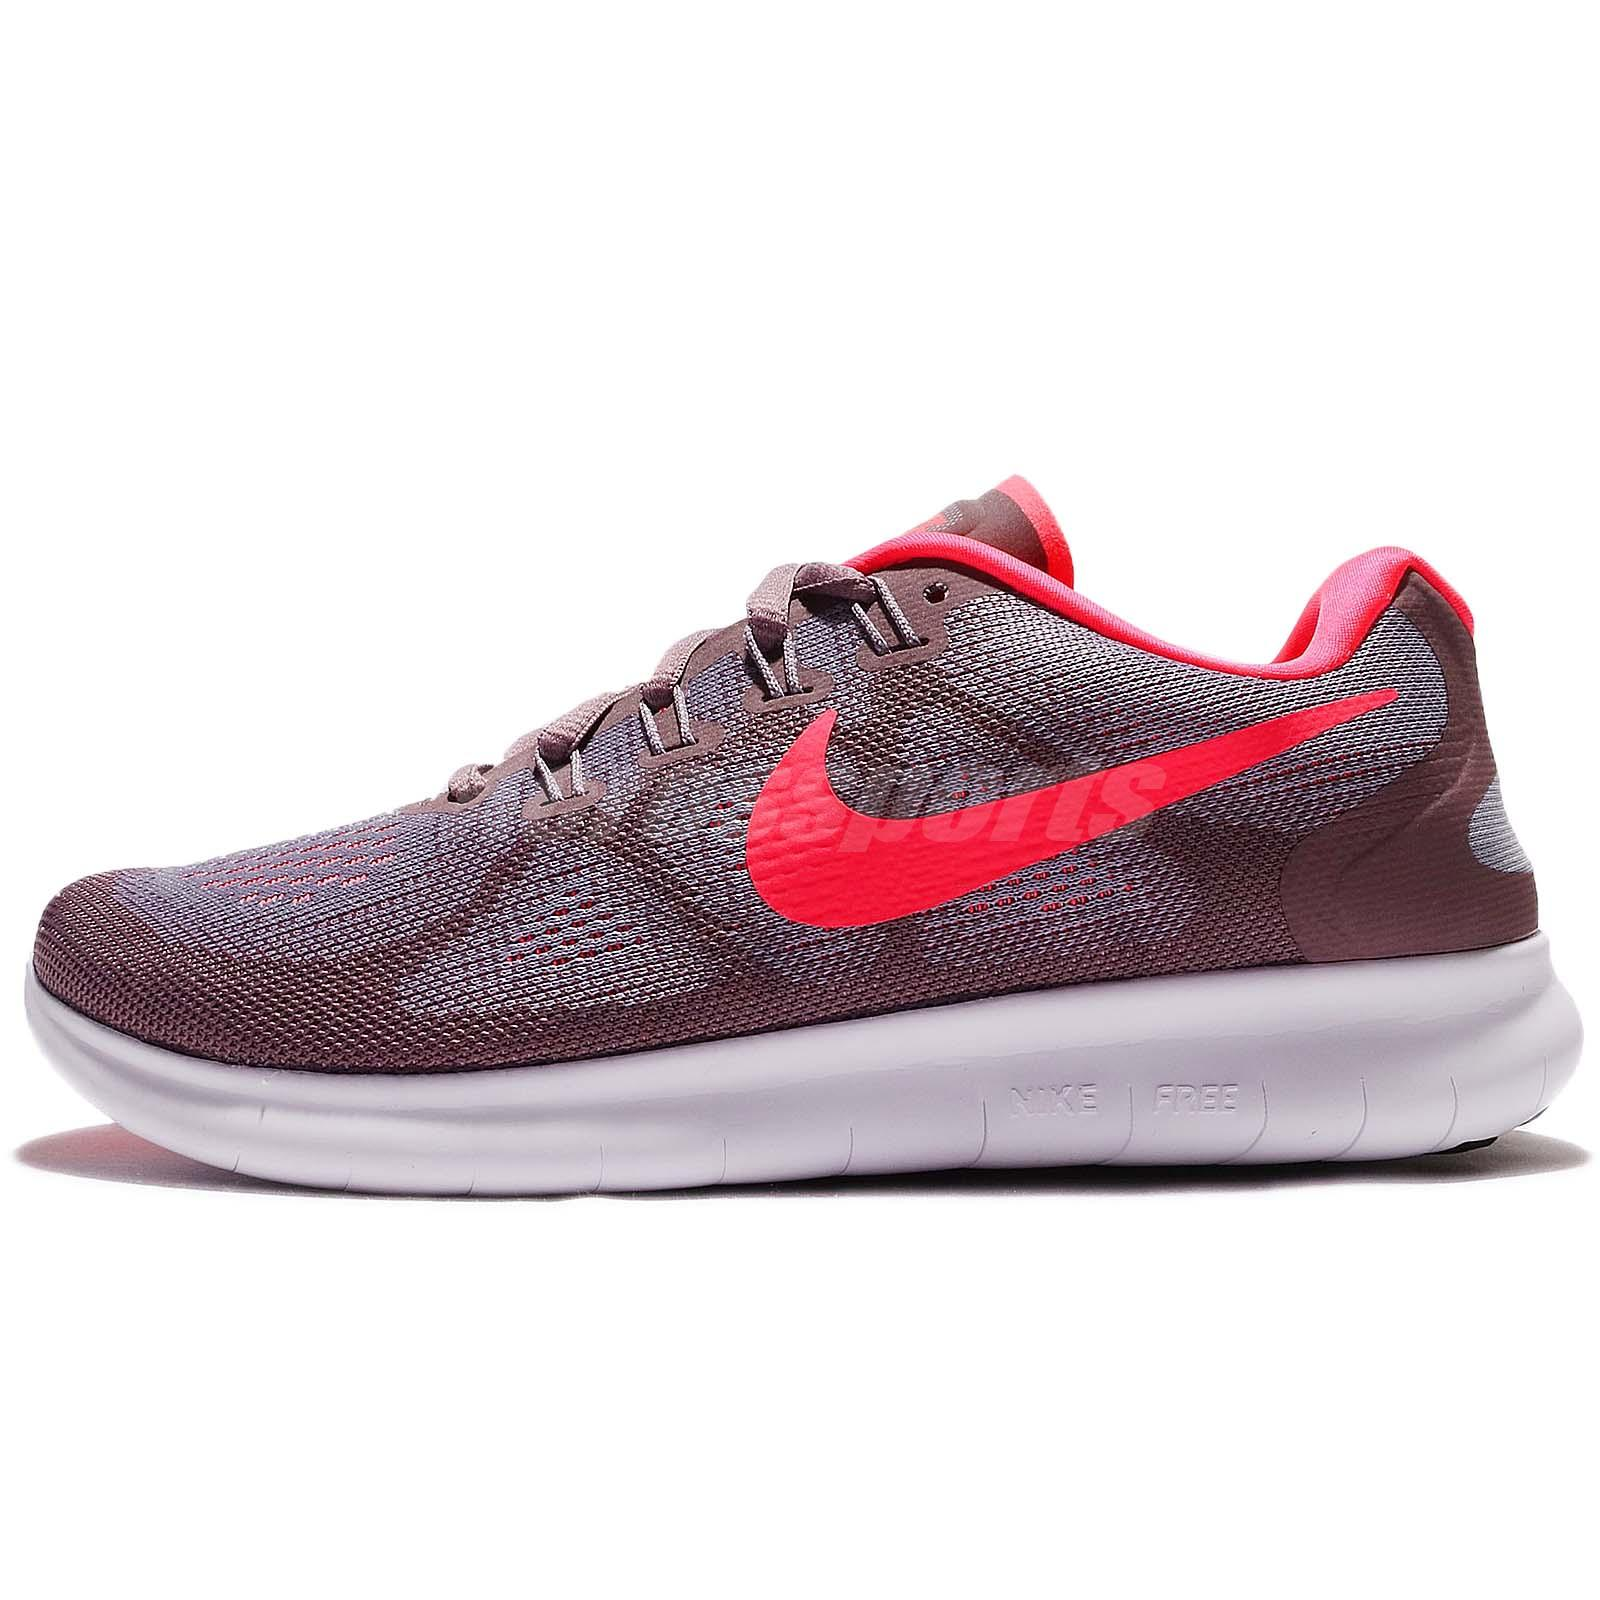 the latest fea71 cbc22 Details about Wmns Nike Free RN 2017 Run Purple Hot Punch Women Running  Shoes 880840-501